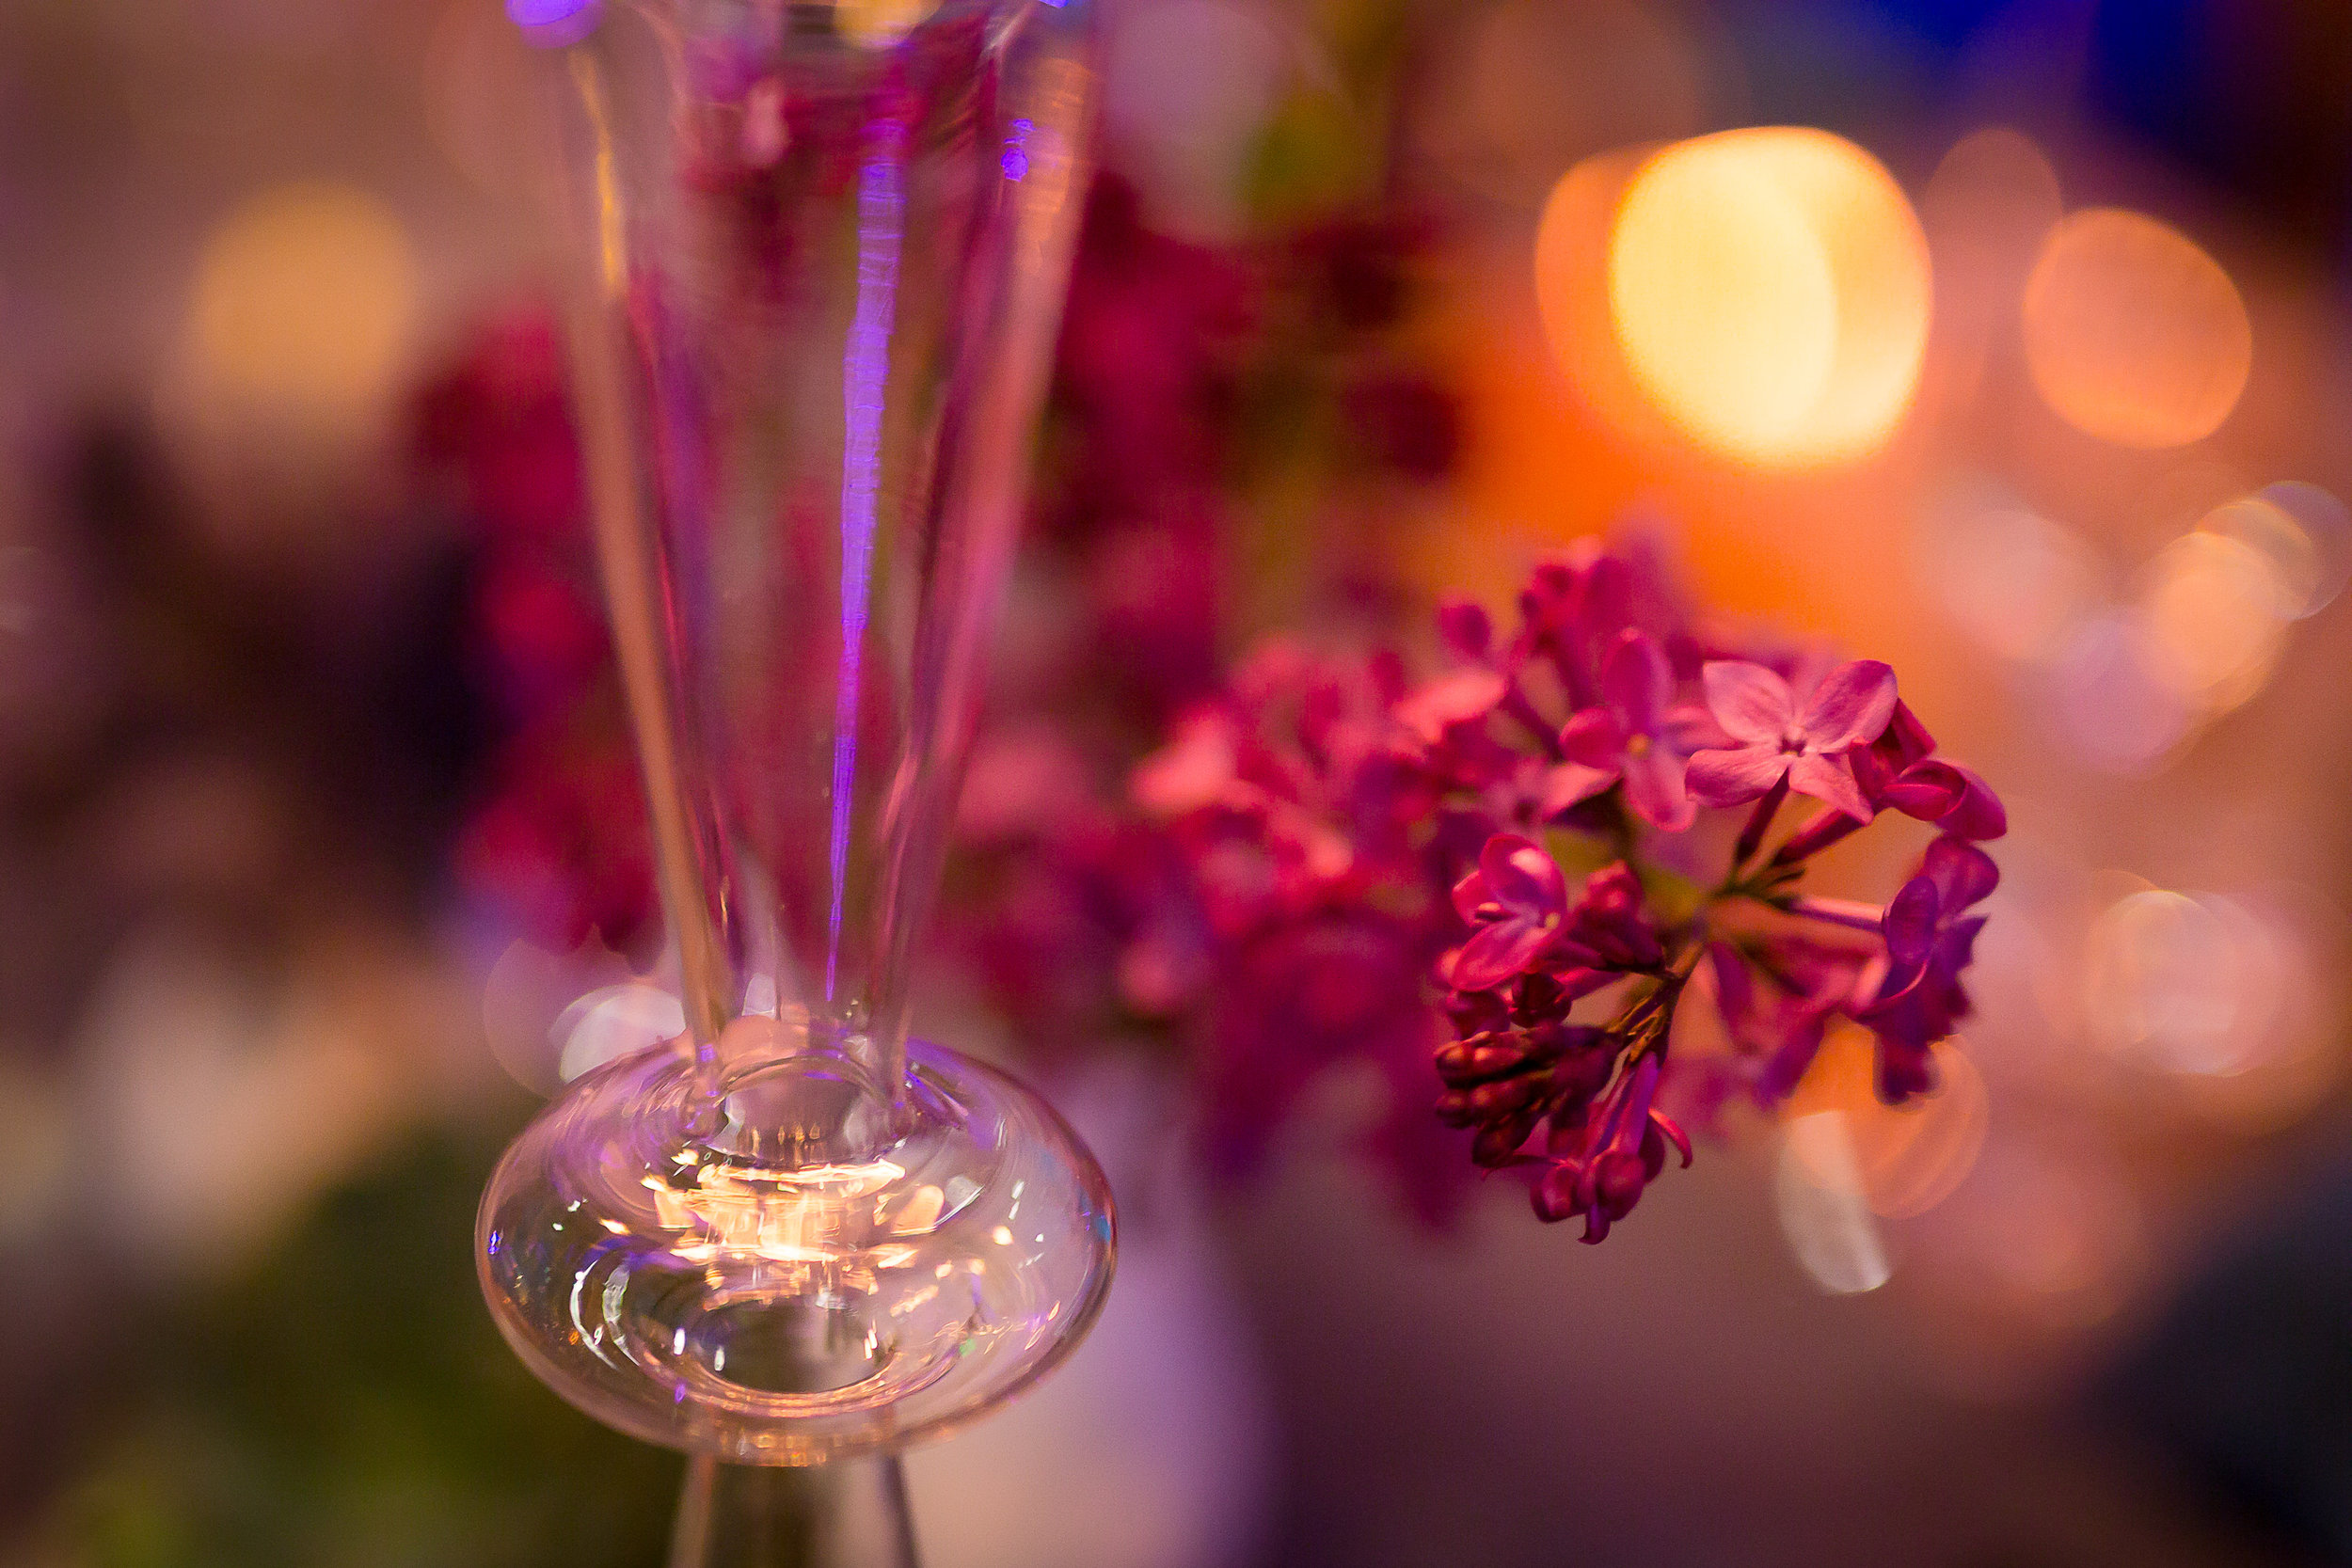 044-Chantal-Events-Space&Details.jpg